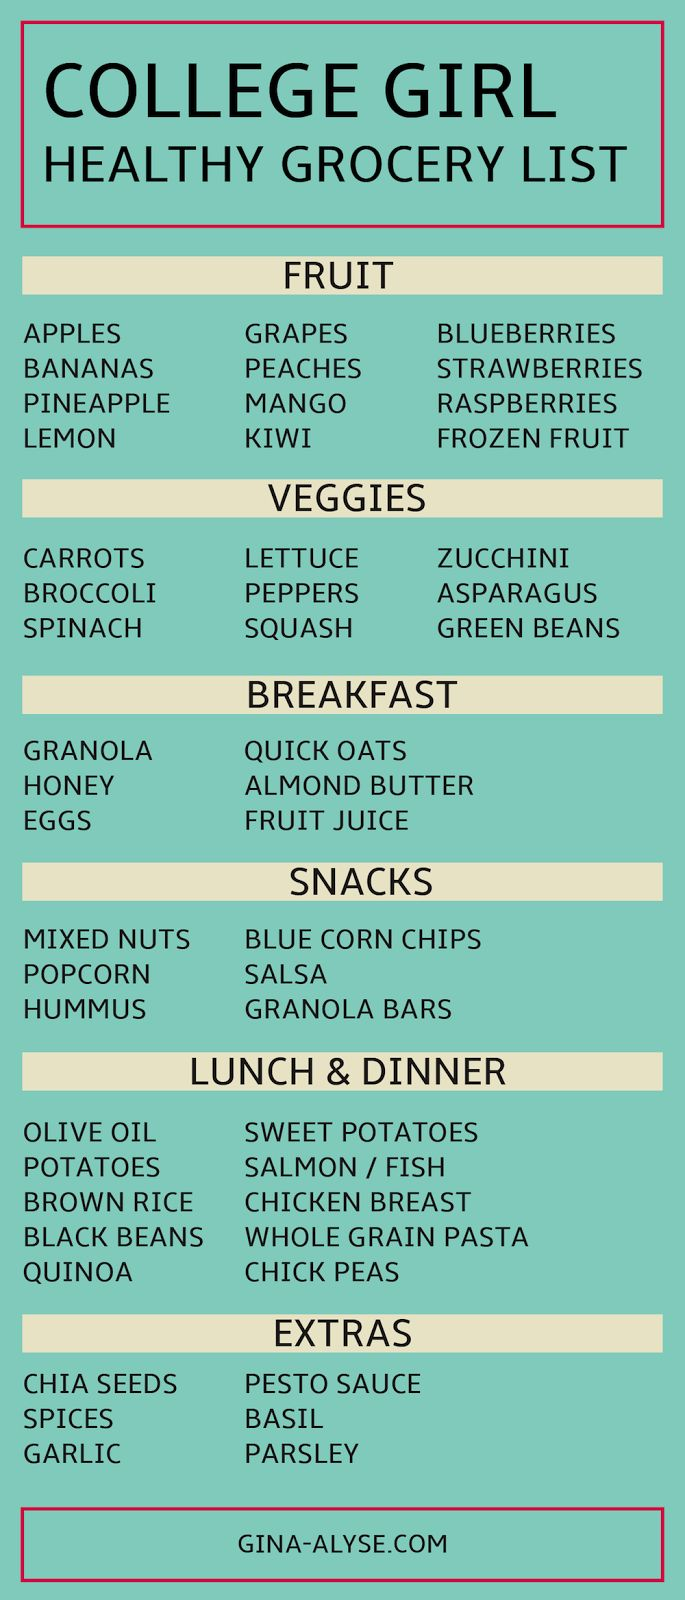 Healthy College Girl Grocery List | Fruit + Veggies + Breakfast + Lunch + Dinner ideas!